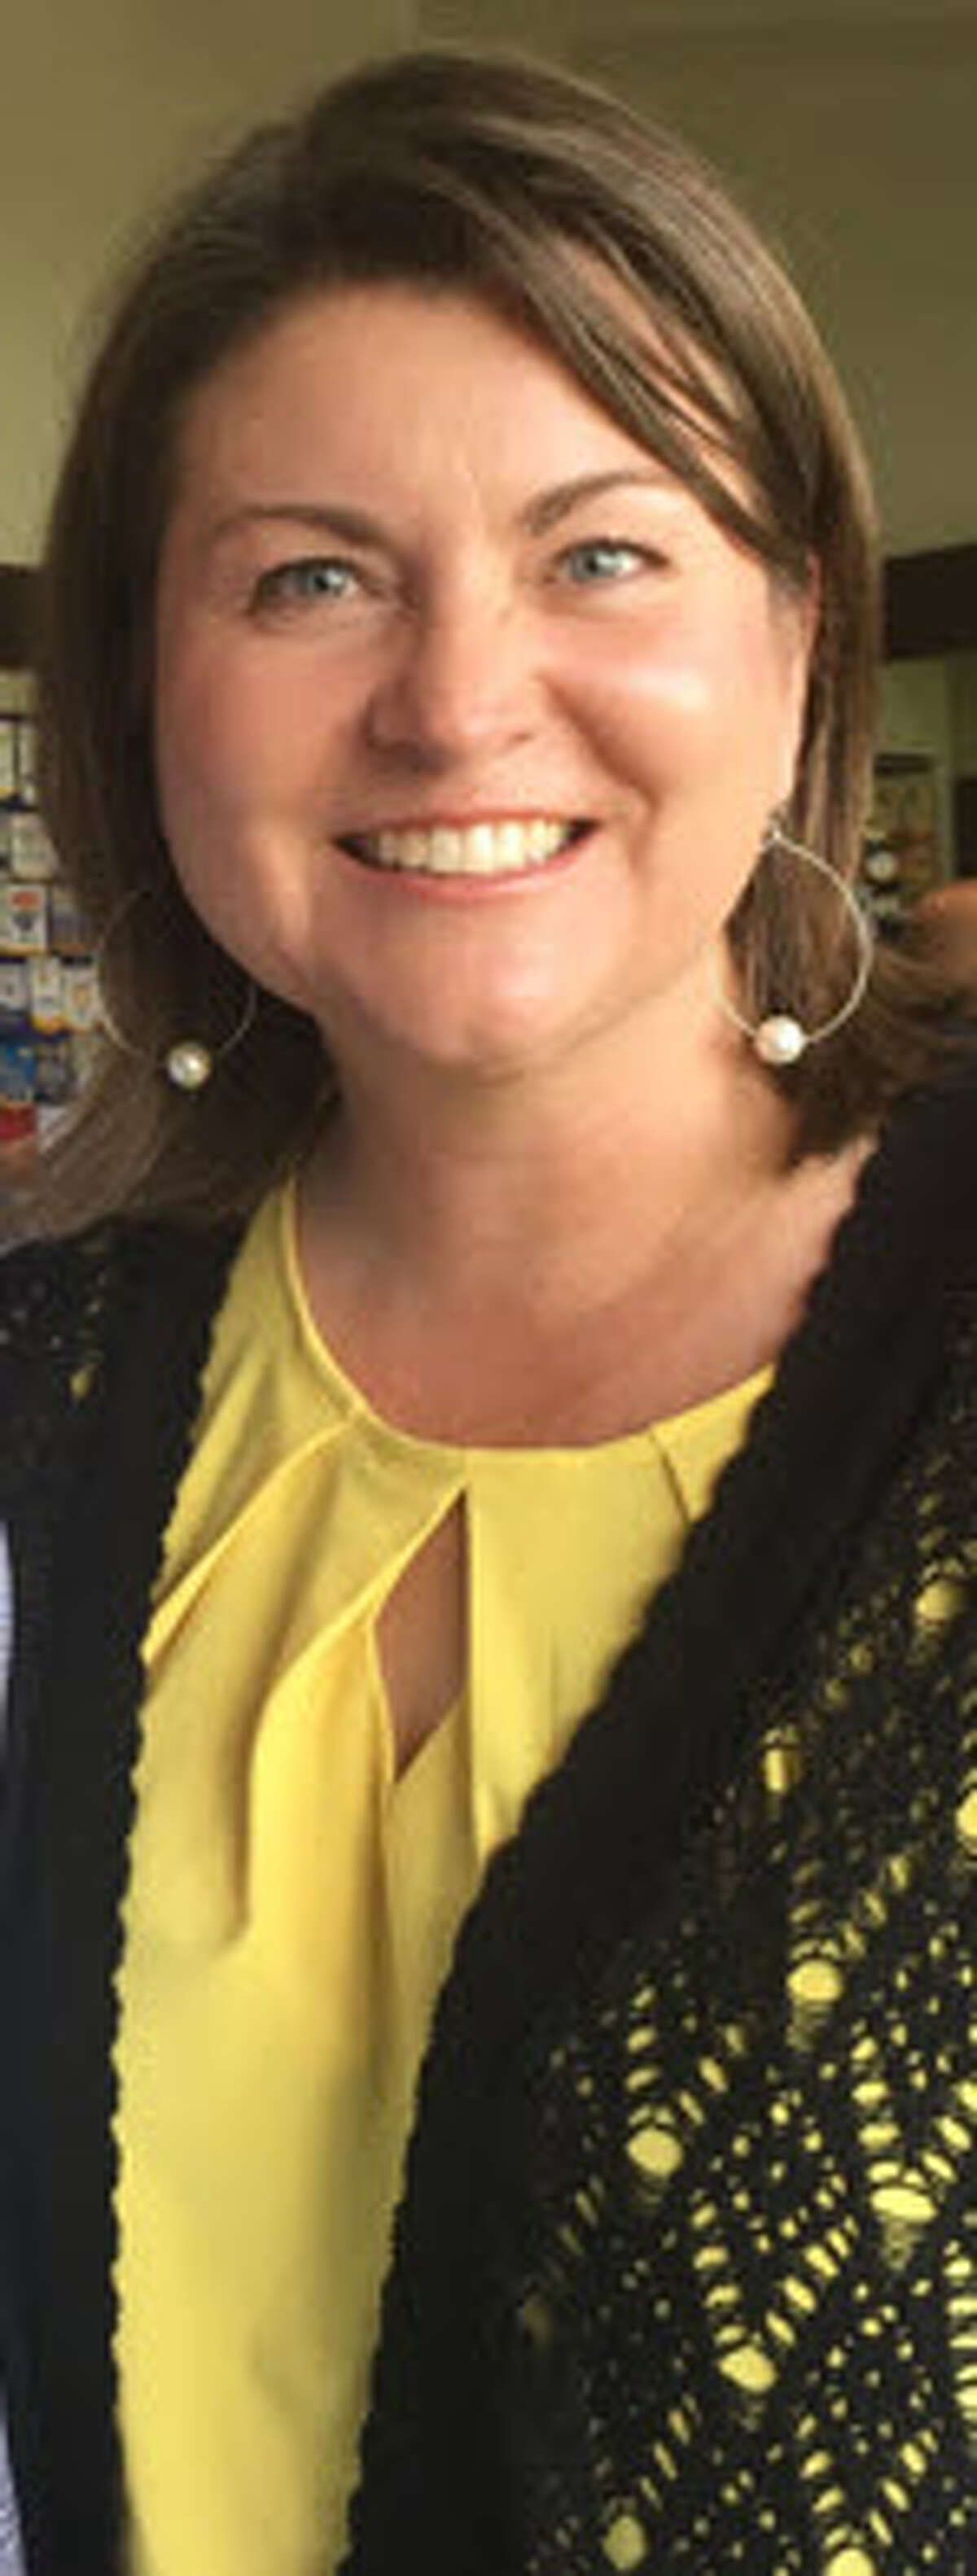 Wendy Duncan has served as assistant vice president of Willow Fork Drainage District for 2½ years. She alsoco-founded Barker Flood Prevention,an advocacy group which works toward immediate and substantial flood management solutions for the Barker Reservoir.